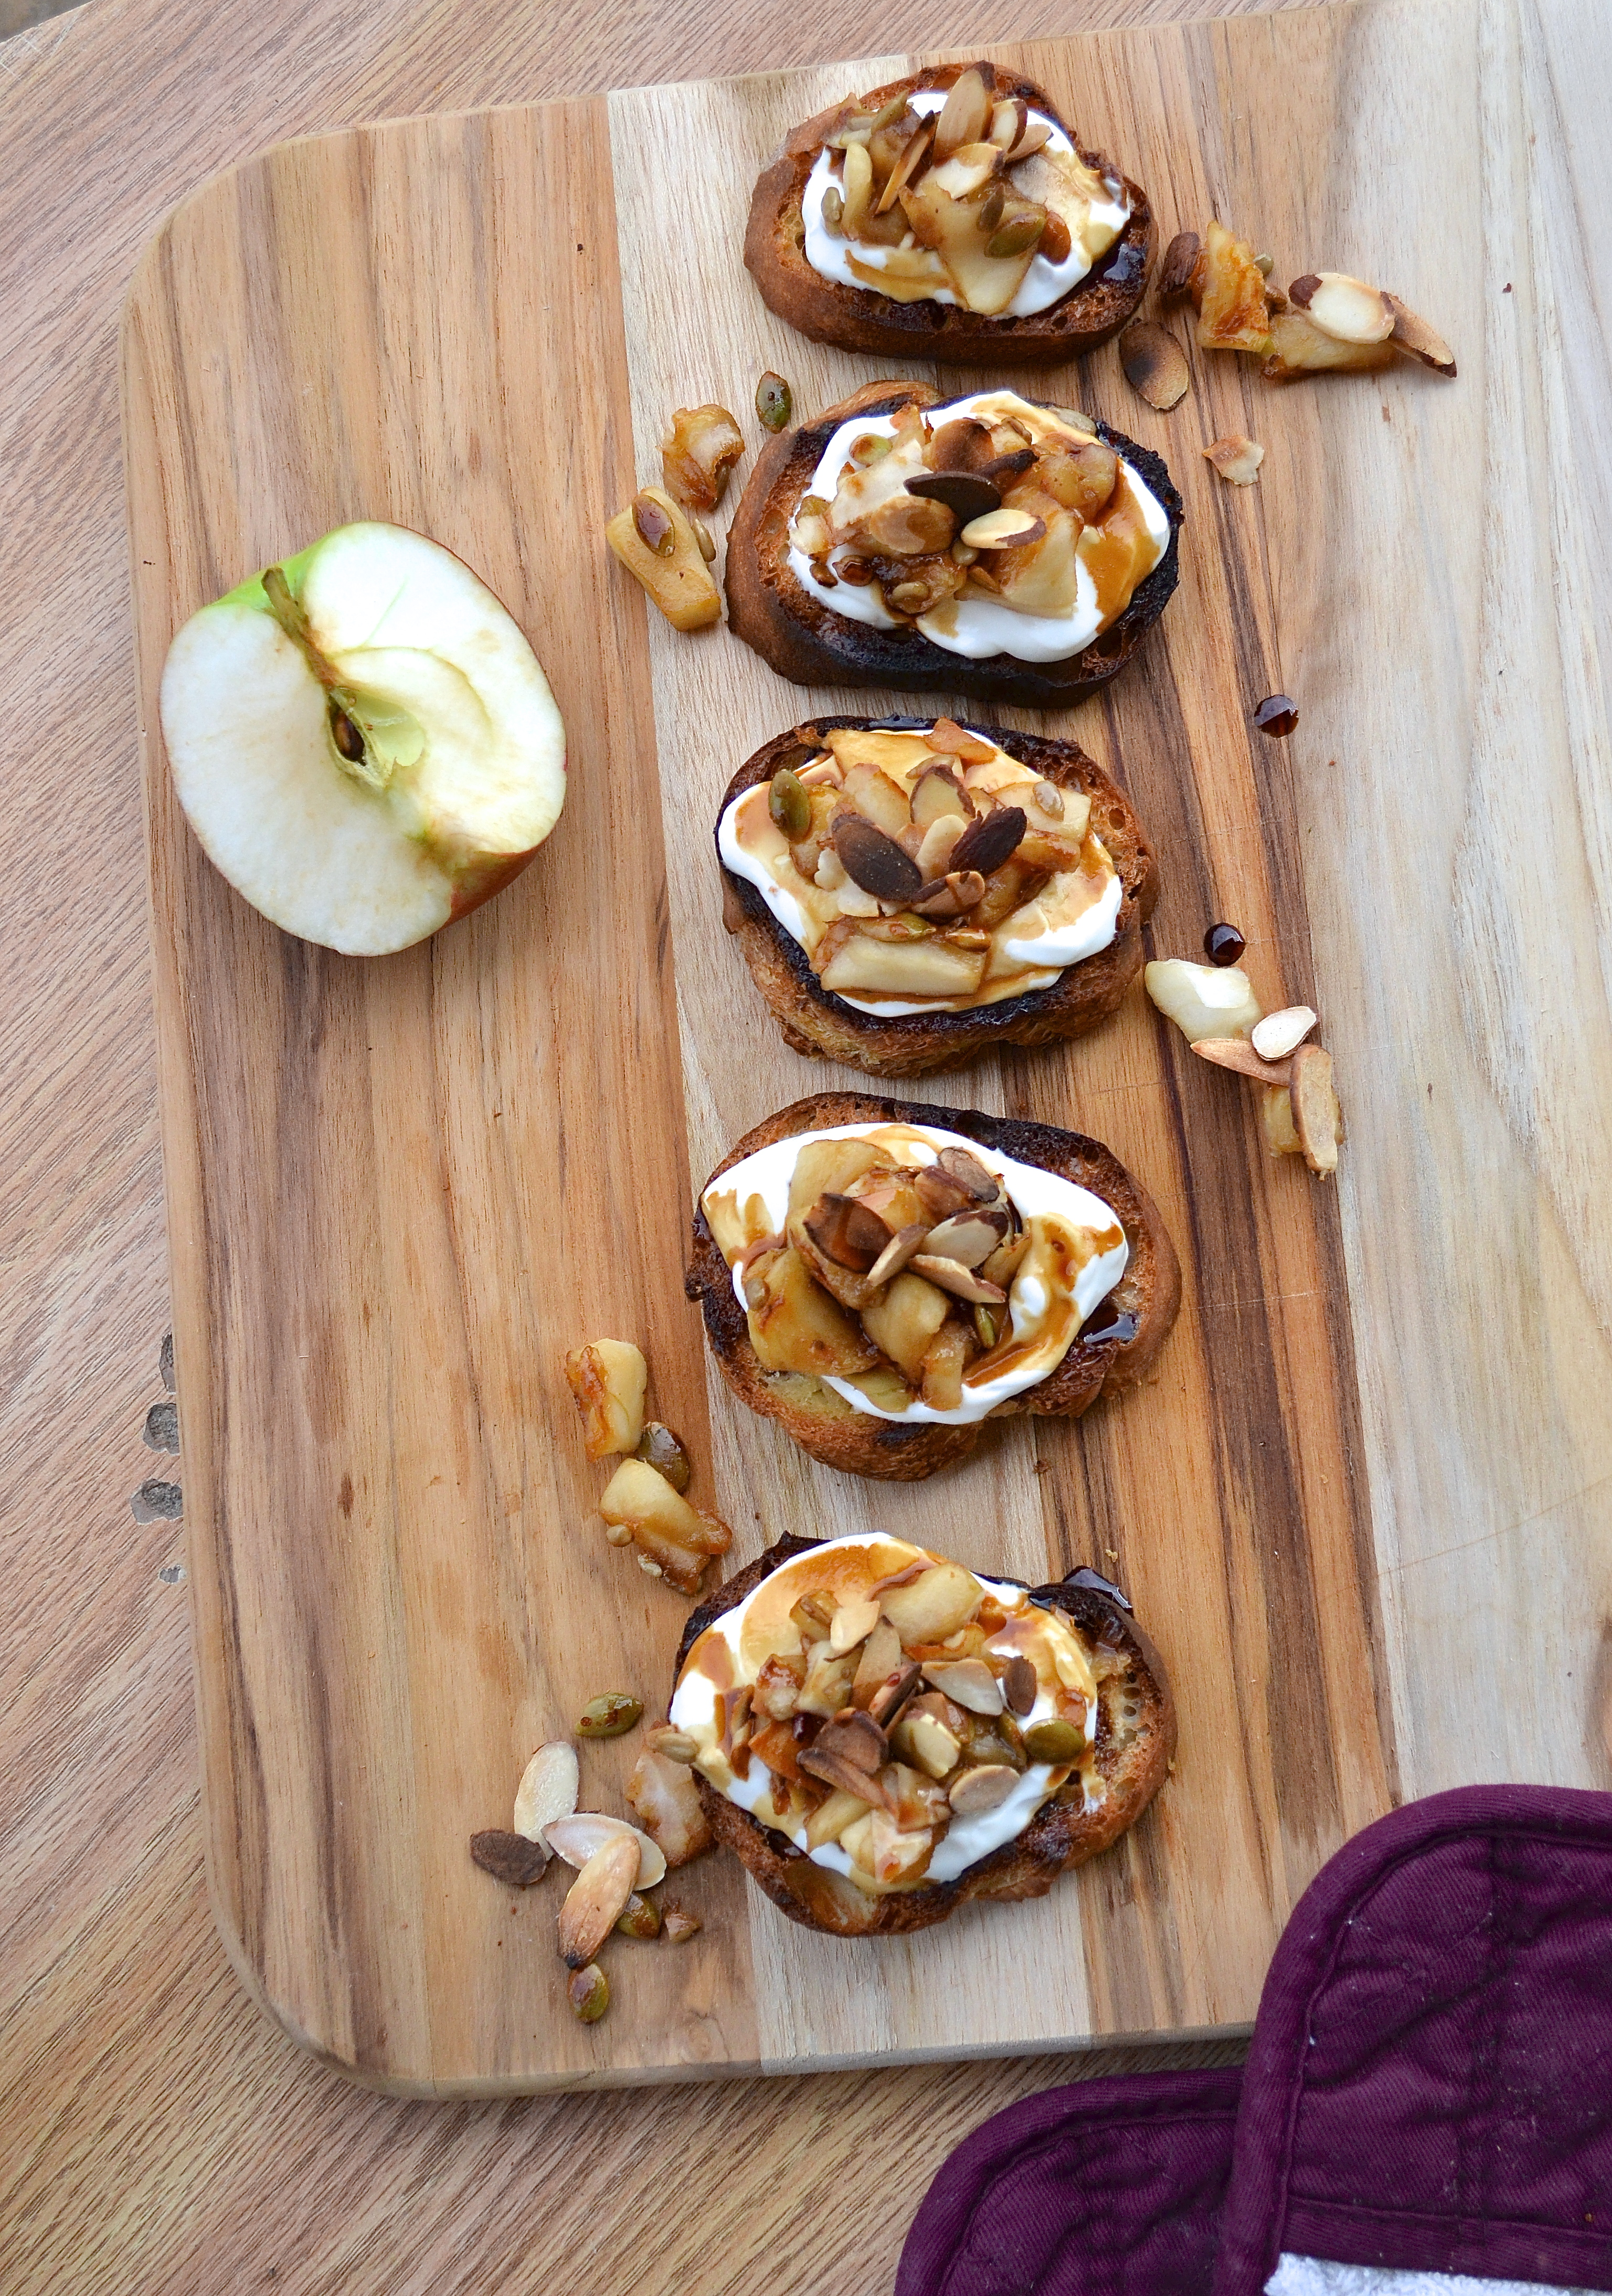 I b(rusch)etta come up with an apple-ing pun for this recipe